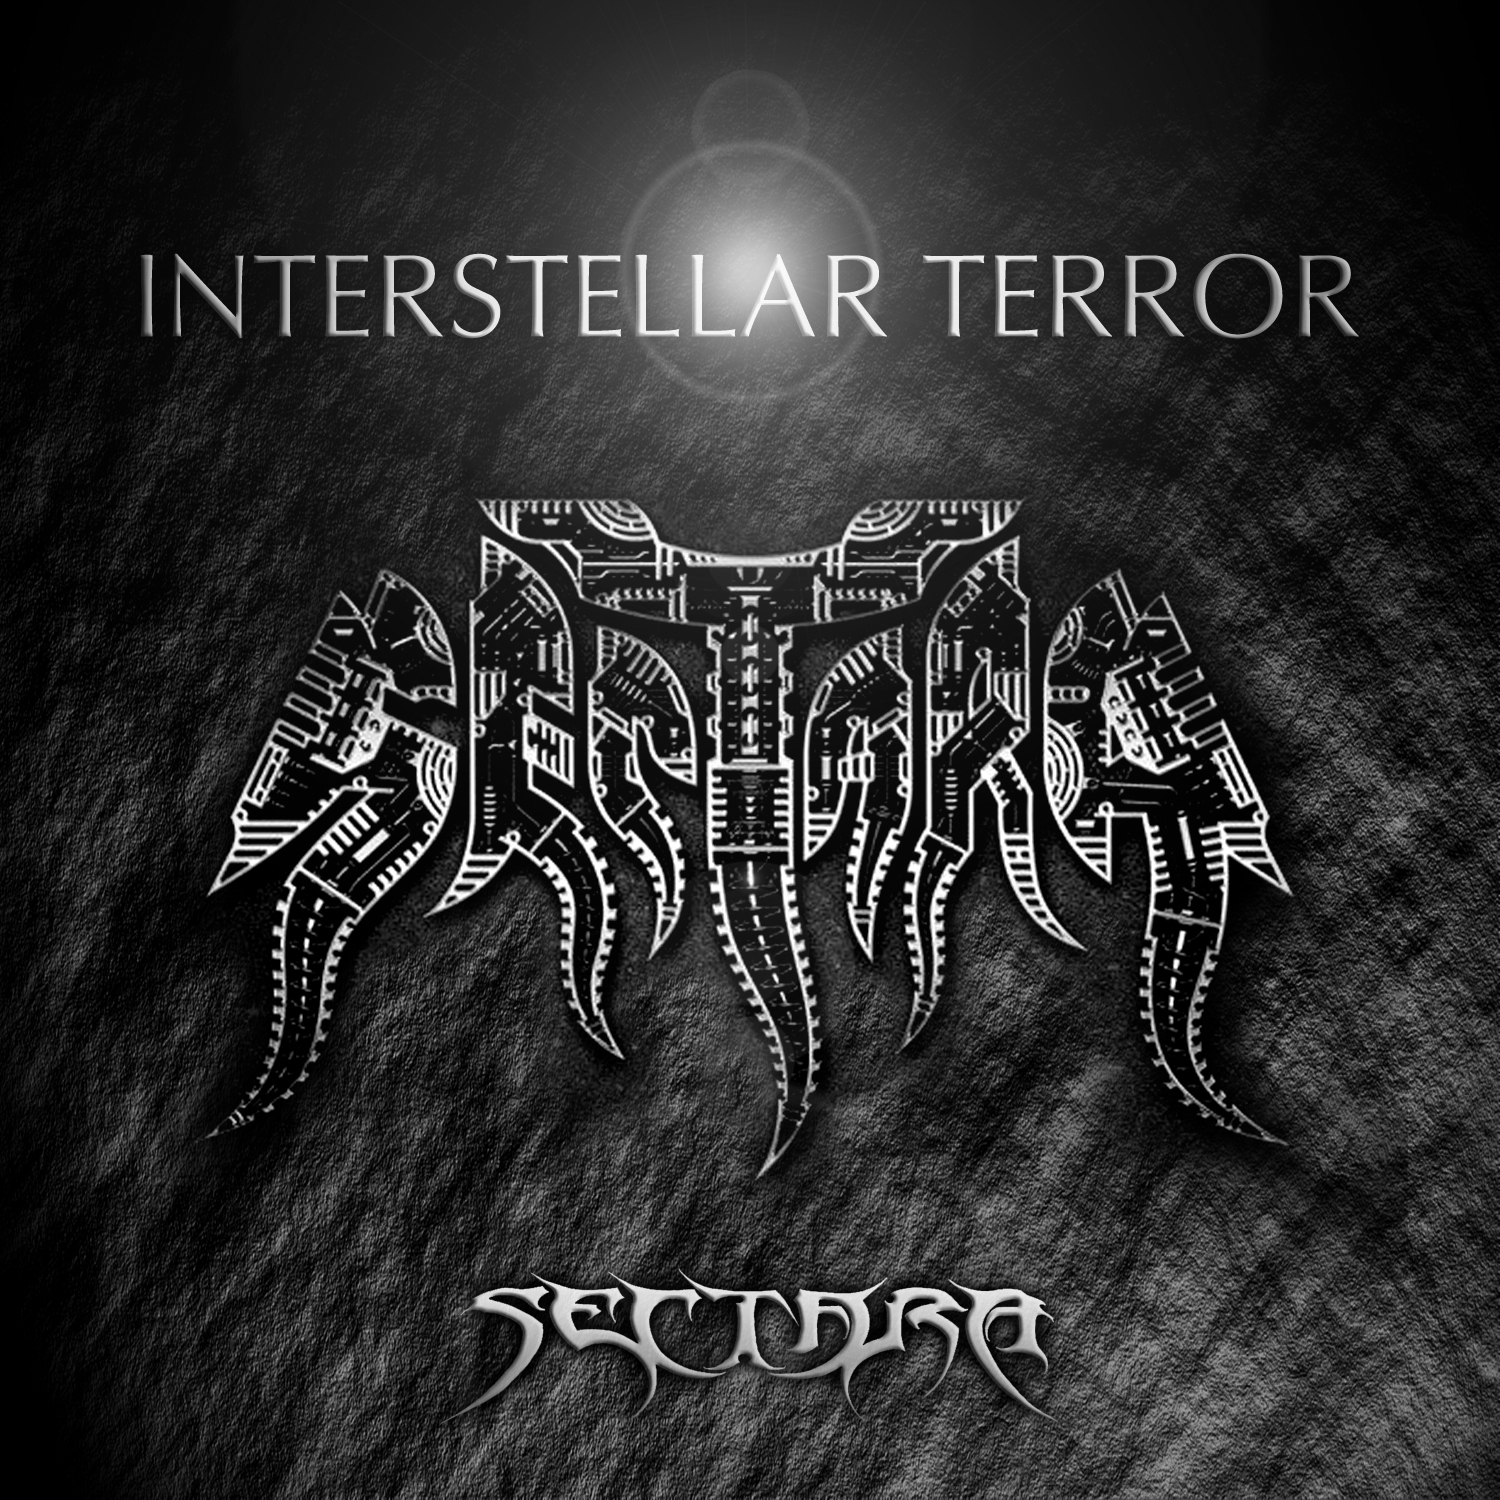 Interstellar Terror by Sectara